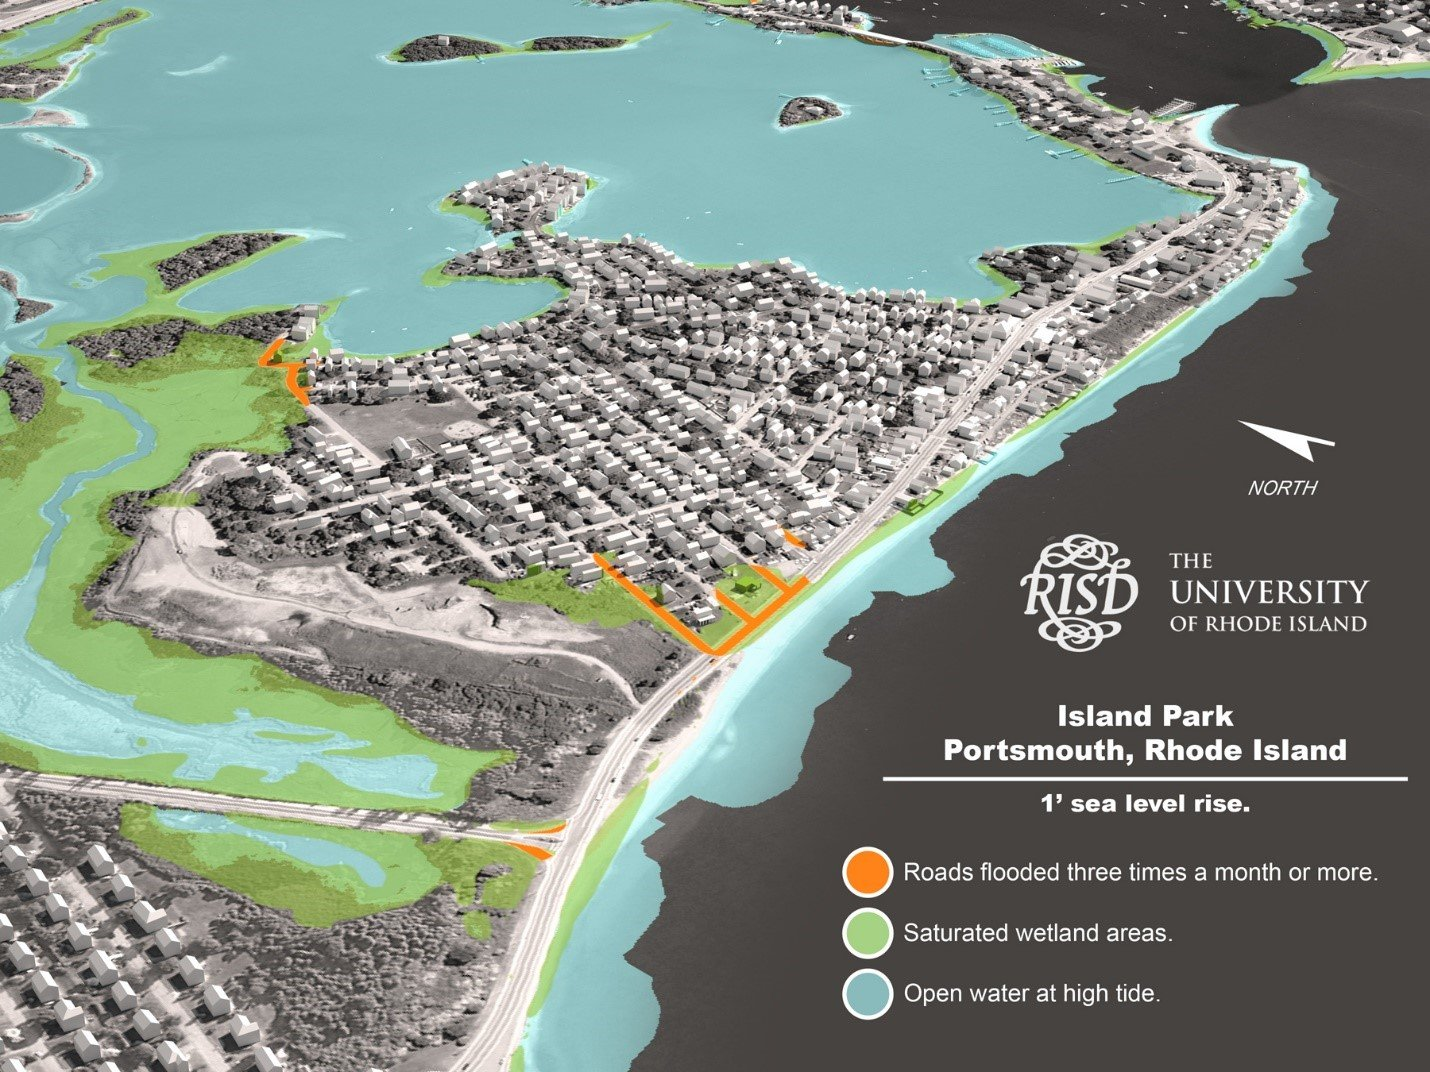 This graphic, which is included in the visualization survey, purports to show the impact of one foot of sea level rise on Island Park.